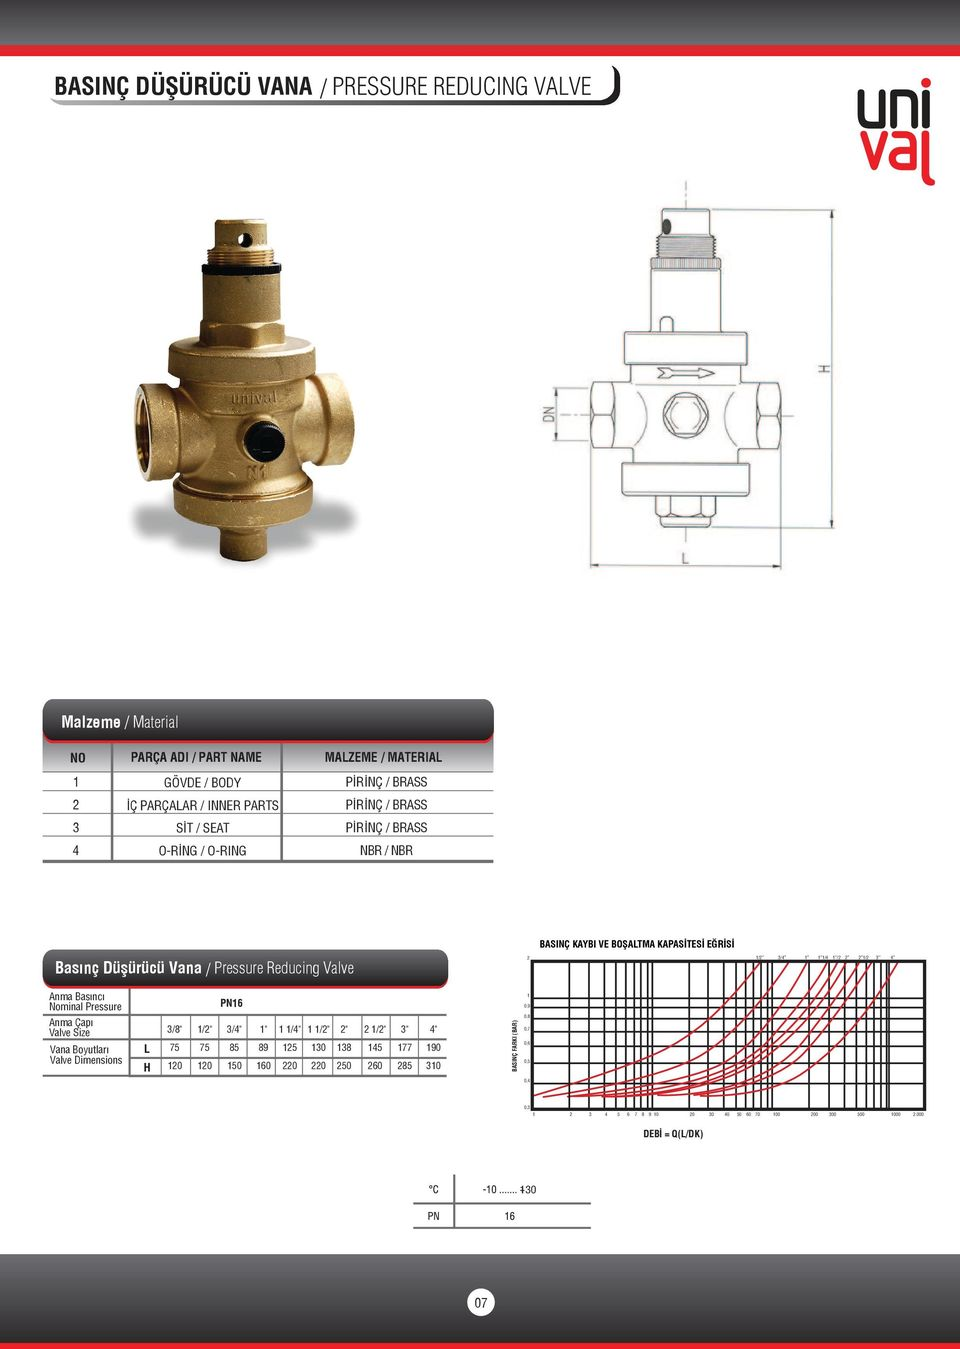 "/ Pressure Reducing Valve / / / / / PN 0. H /"" 0 /"" 0 /"" 0 "" /"" 0 /"" 0 0 "" 0 /"" "" "" 0 0 BASINÇ FARKI (BAR) 0."